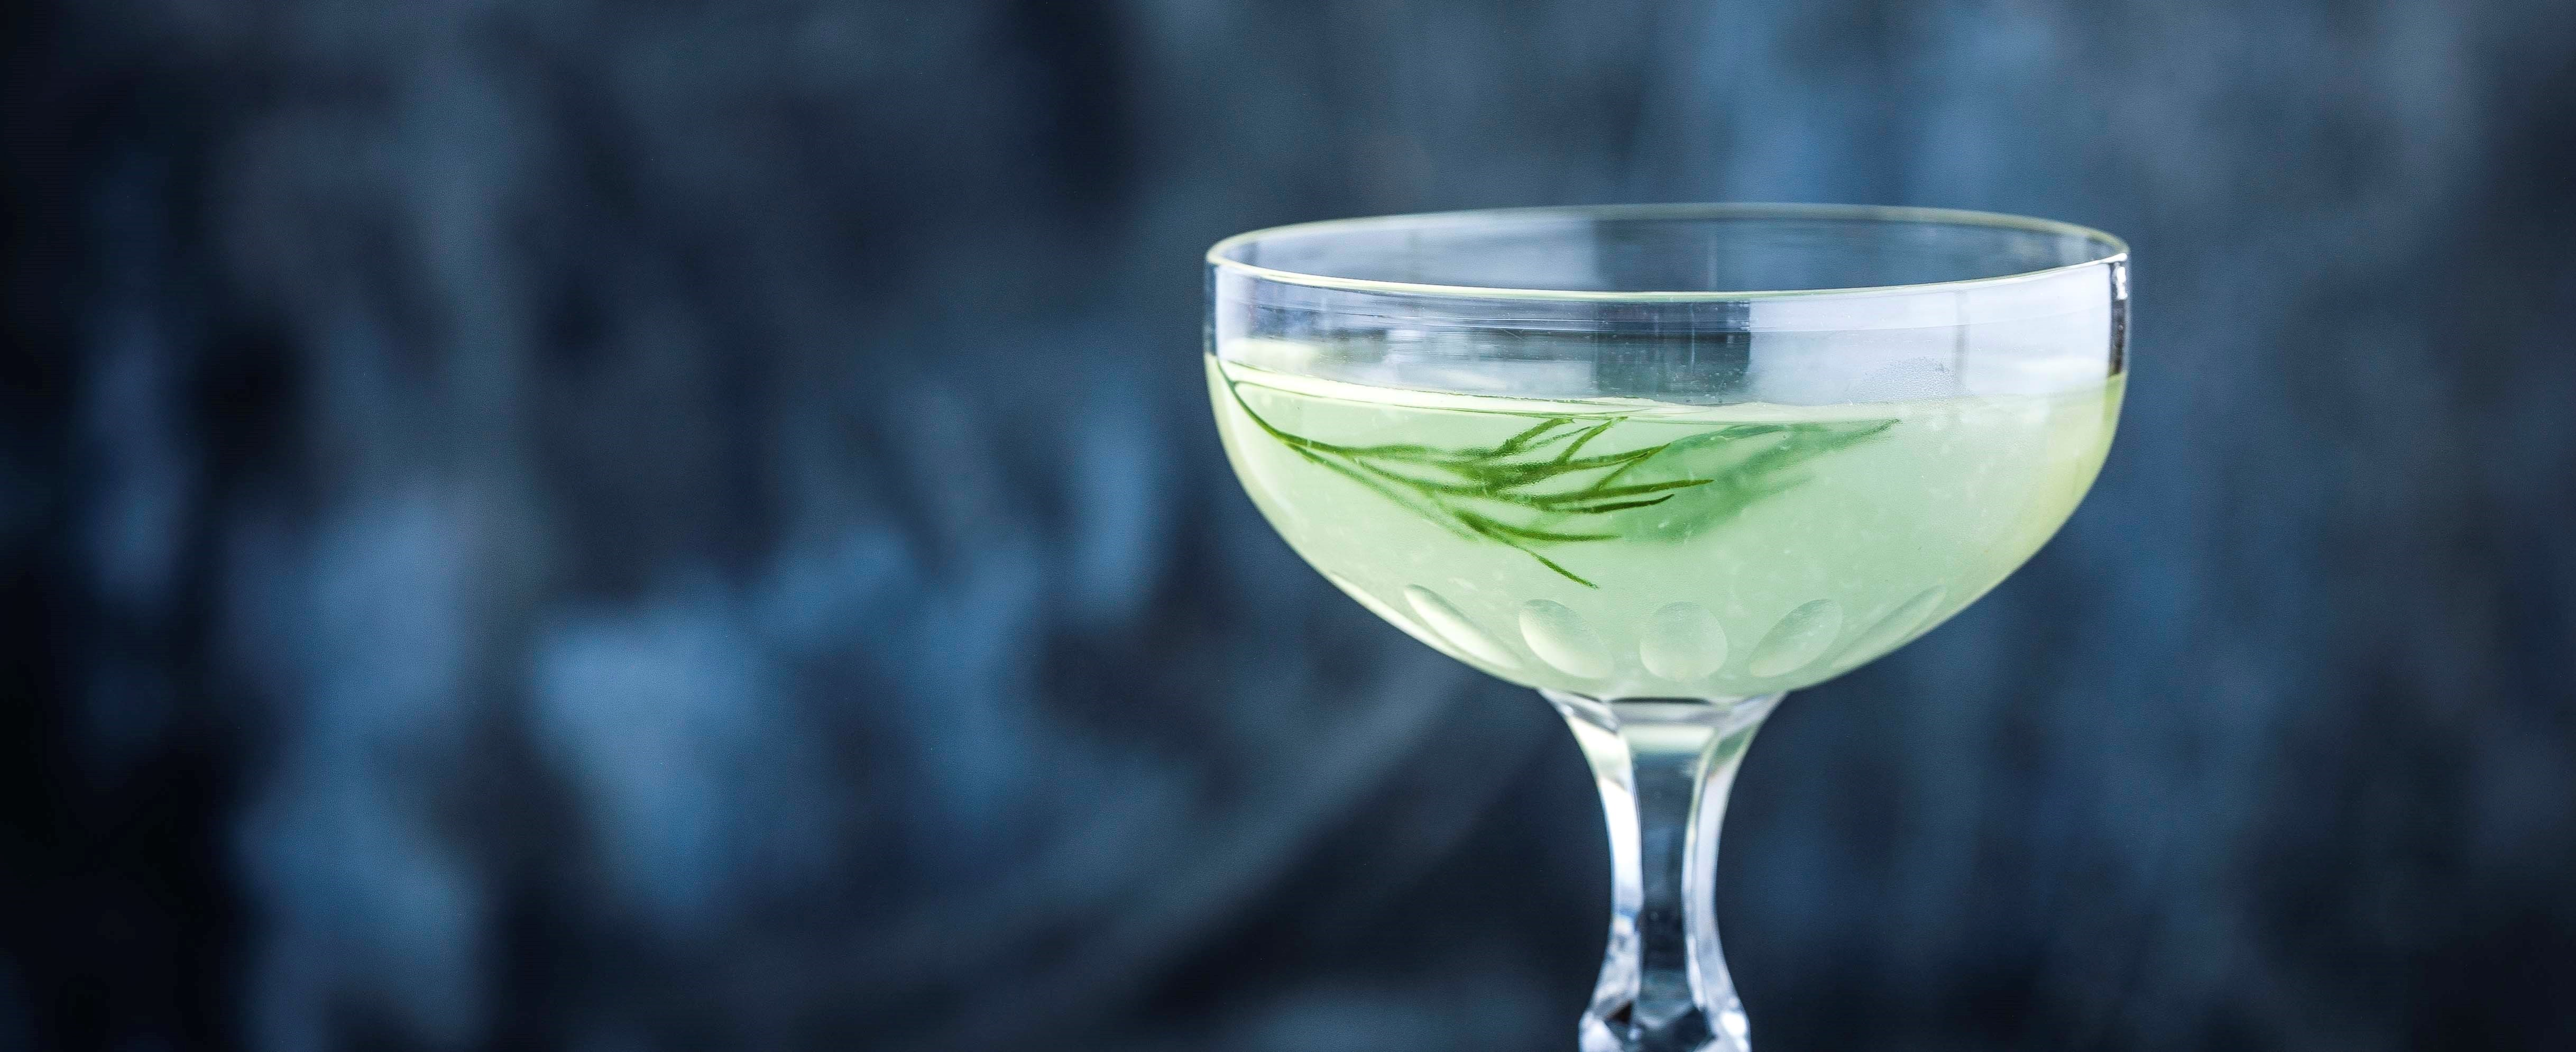 Best gin cocktail recipes olive magazine for Best gin for martini recipes